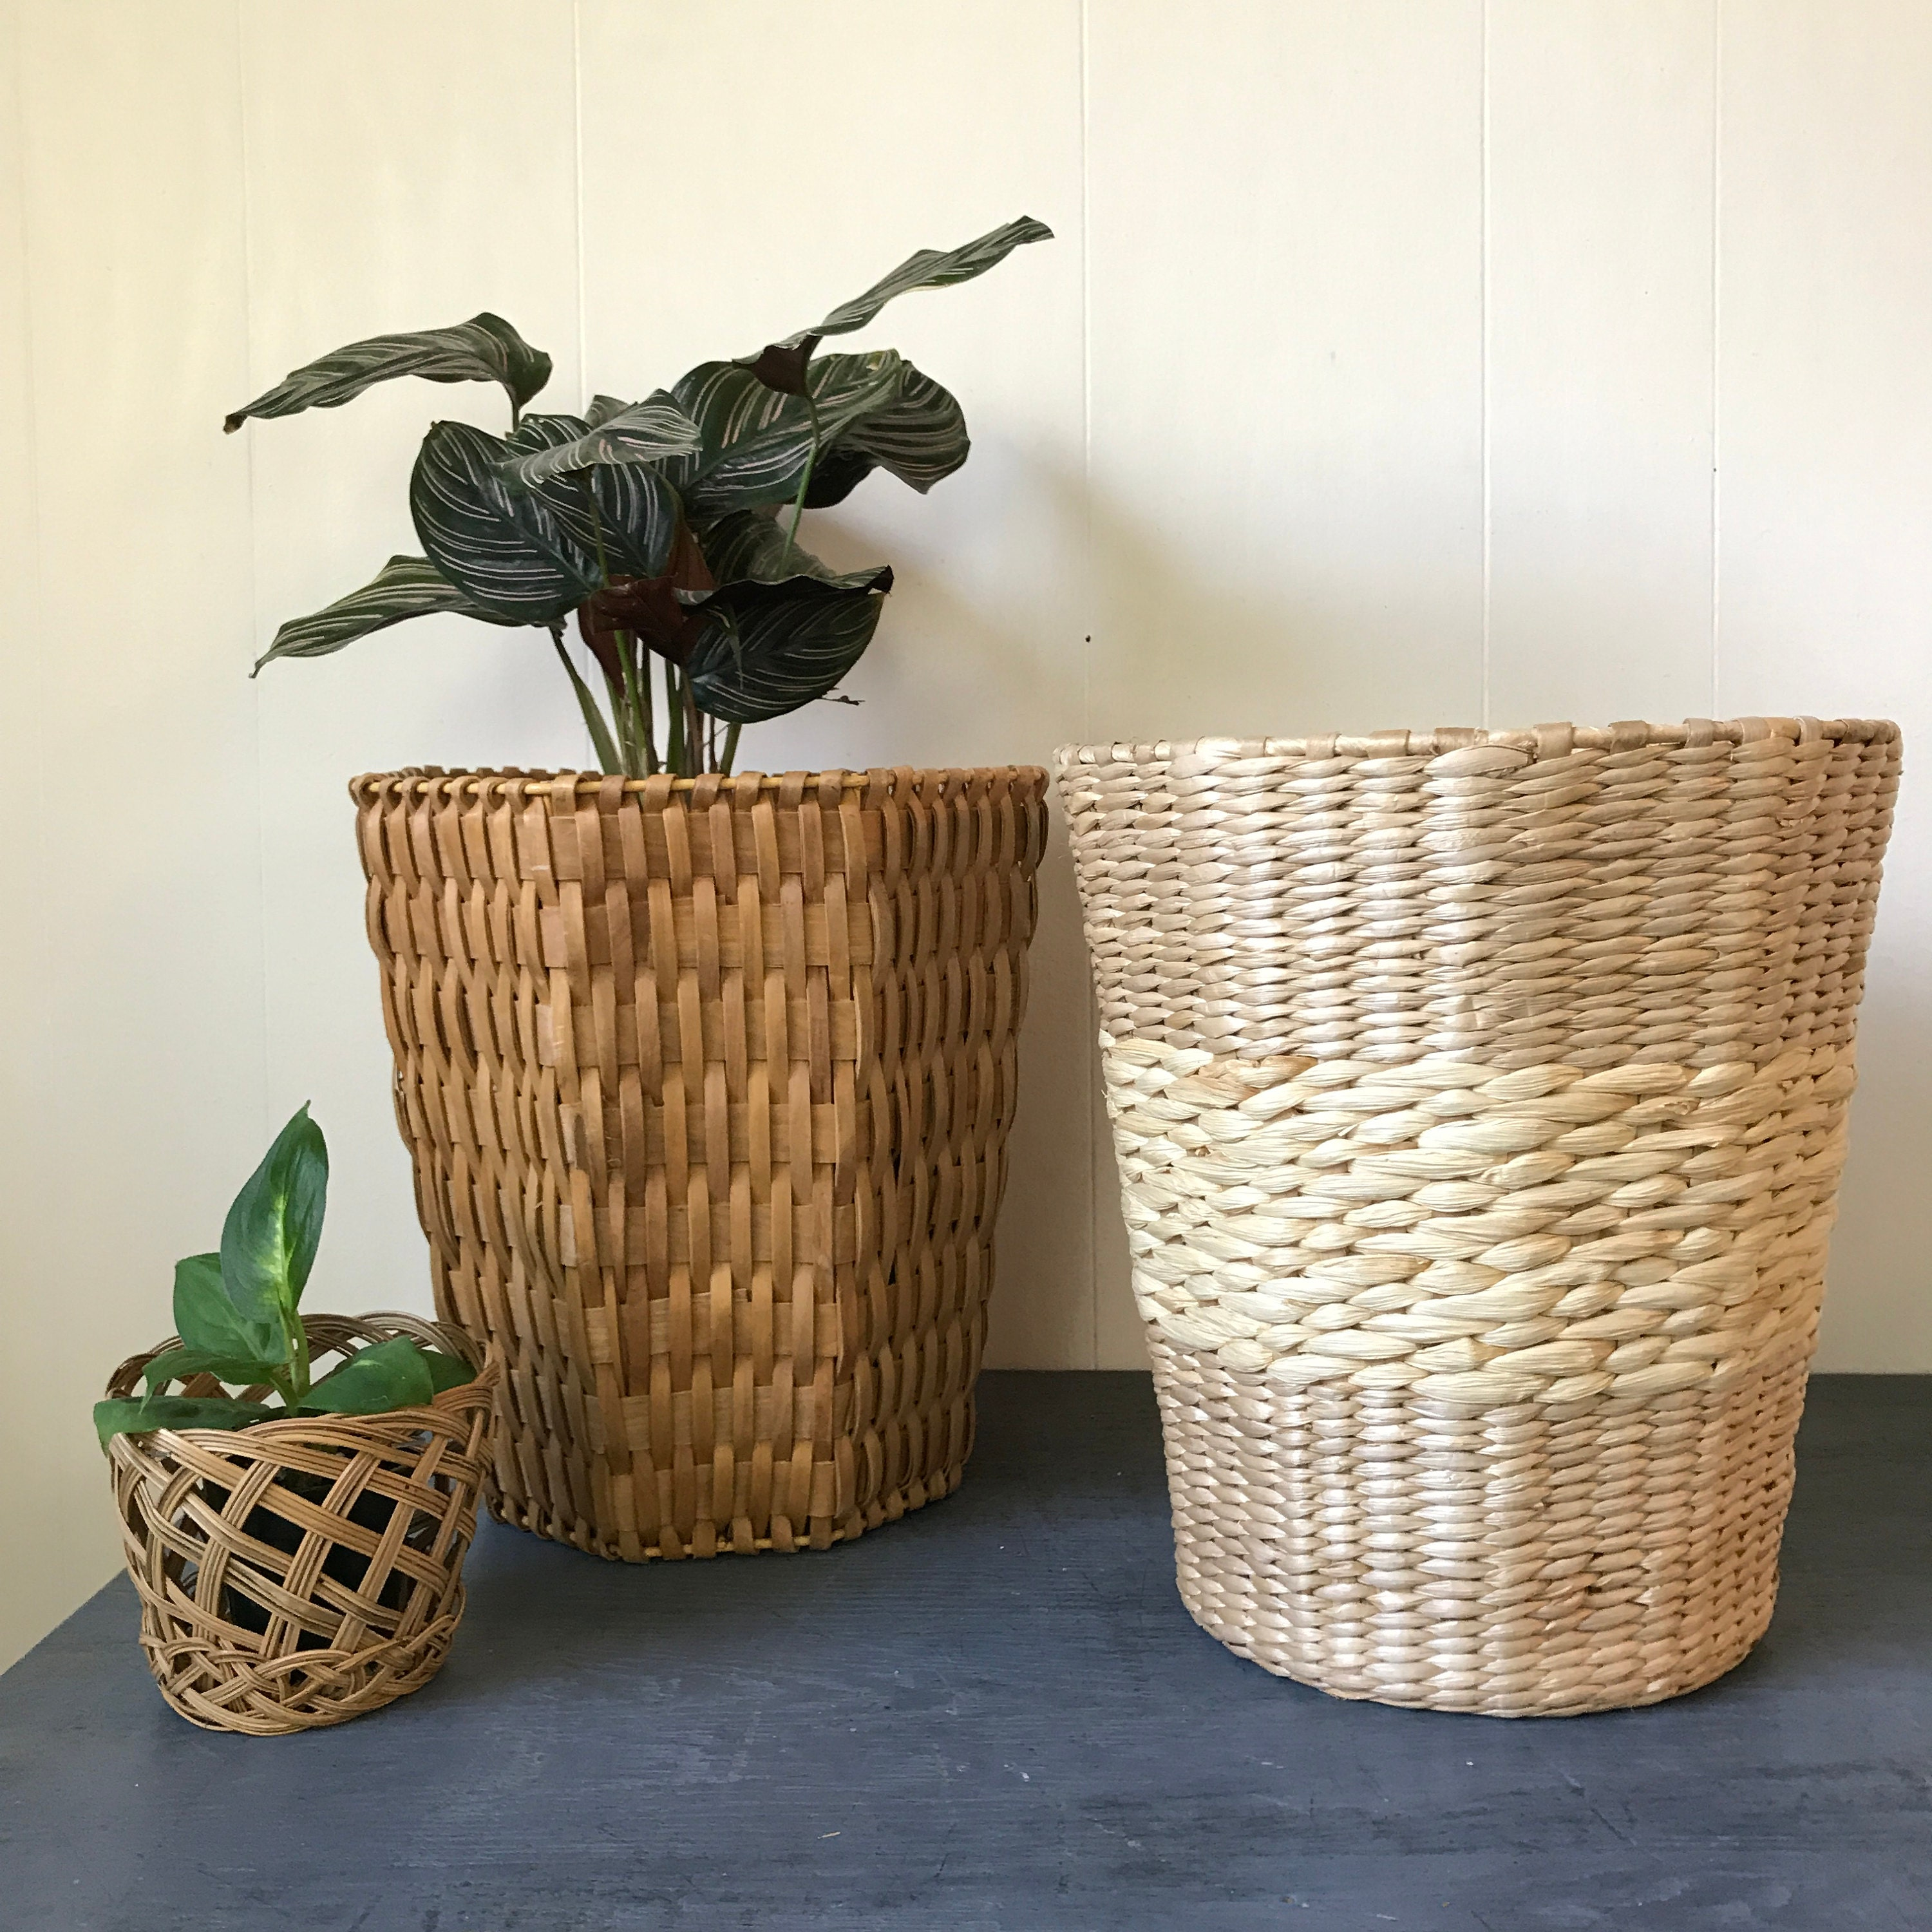 Baskets always remind me of Asian design, and most are created in Asia.